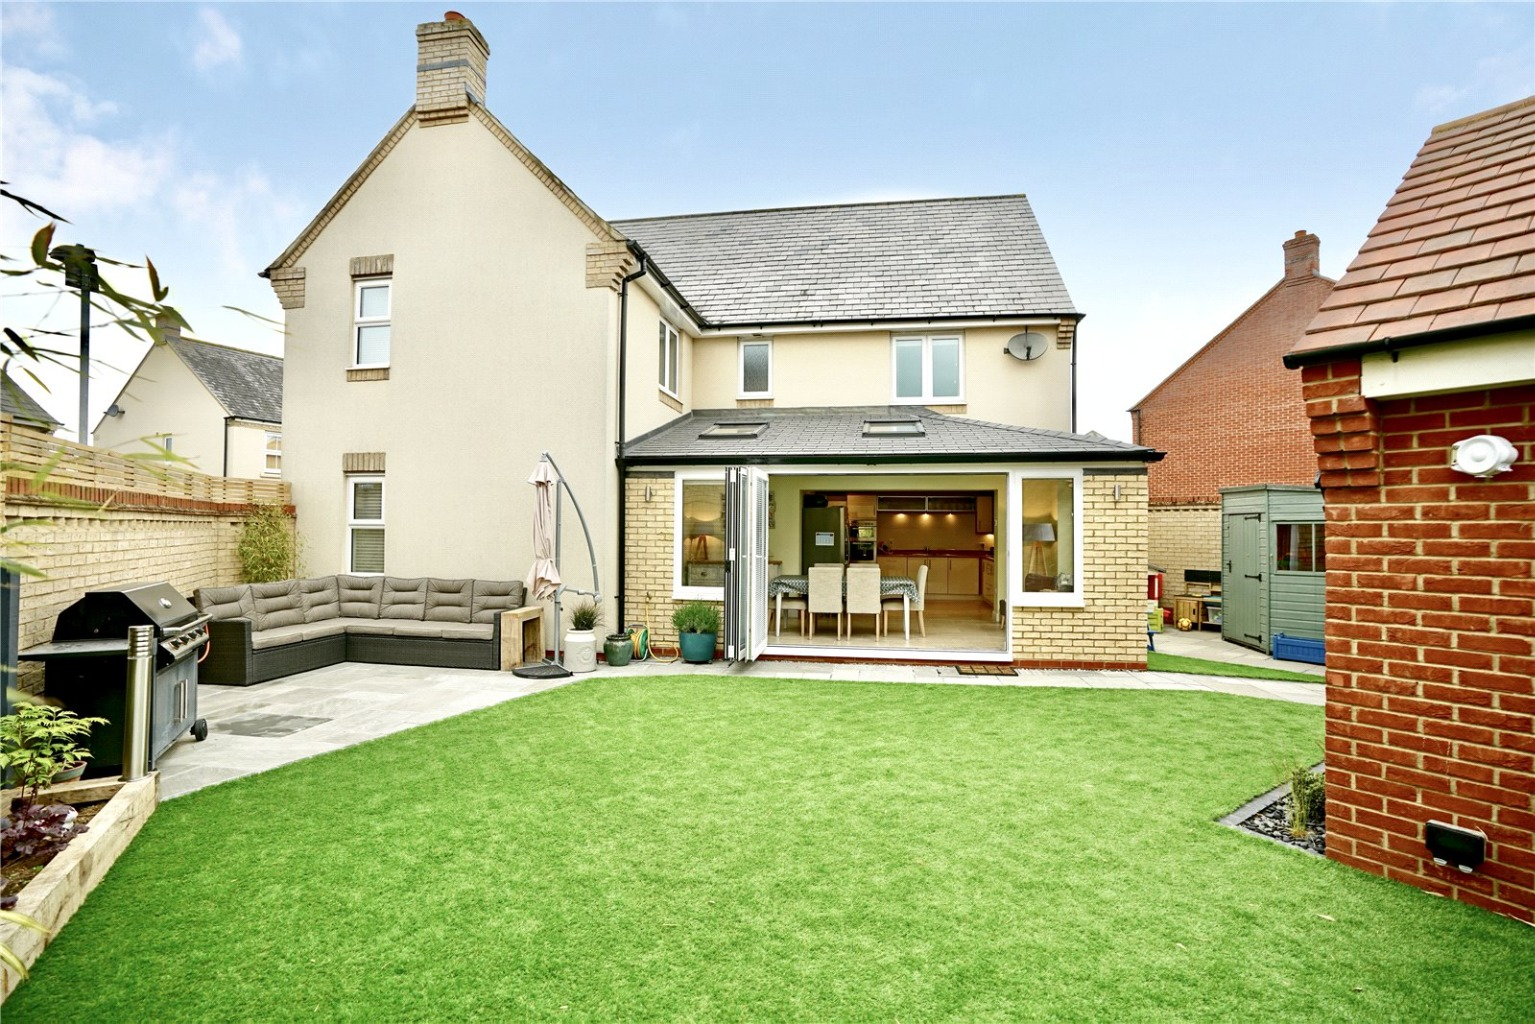 4 bed detached house for sale in Lannesbury Crescent, St. Neots  - Property Image 1